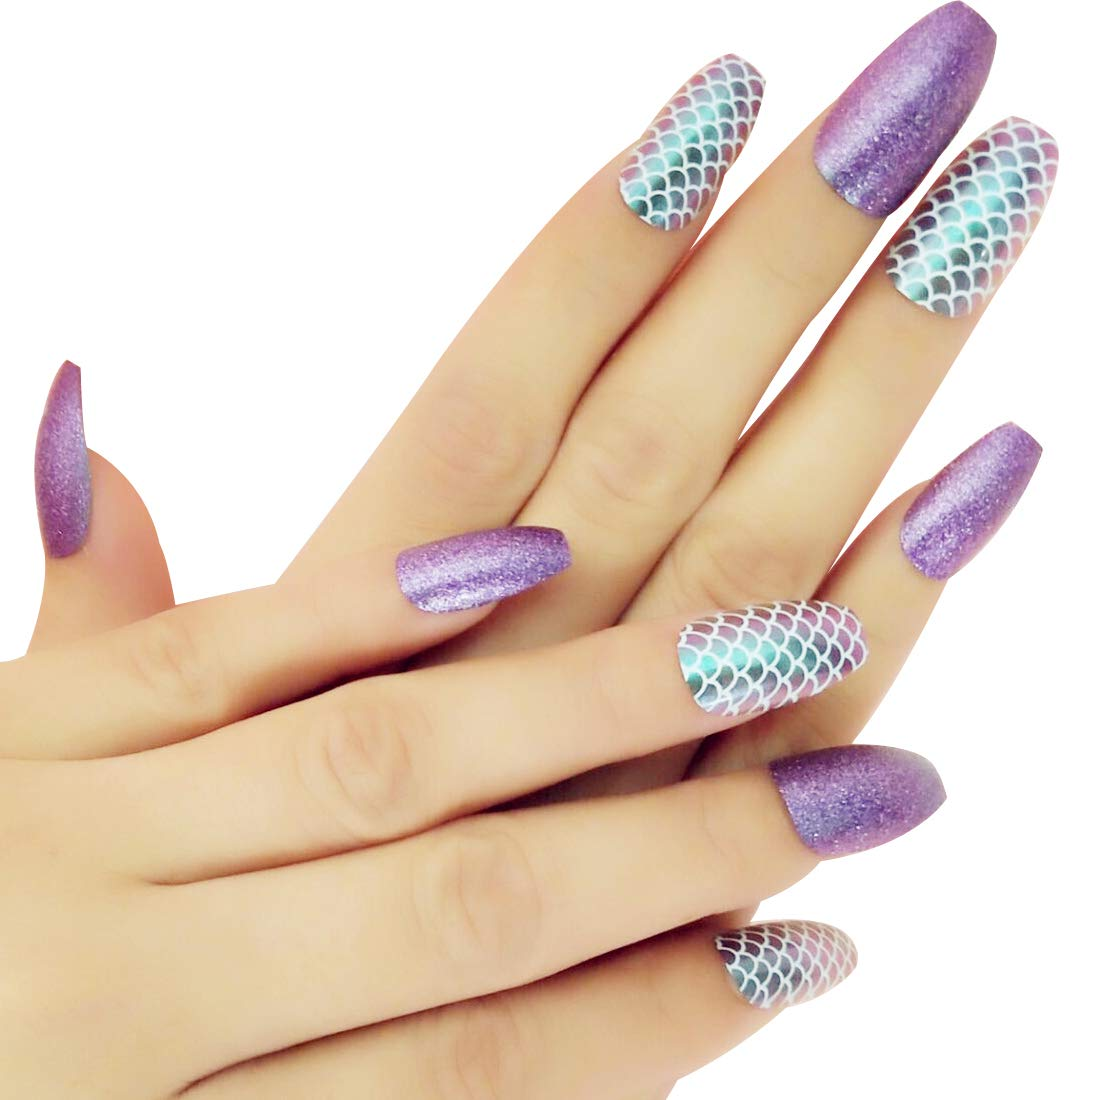 Ballerina Fake Nail Tips Designed with Purple Glitter & Mermaid Fish-scale Coffin Nails for Women Nail Art